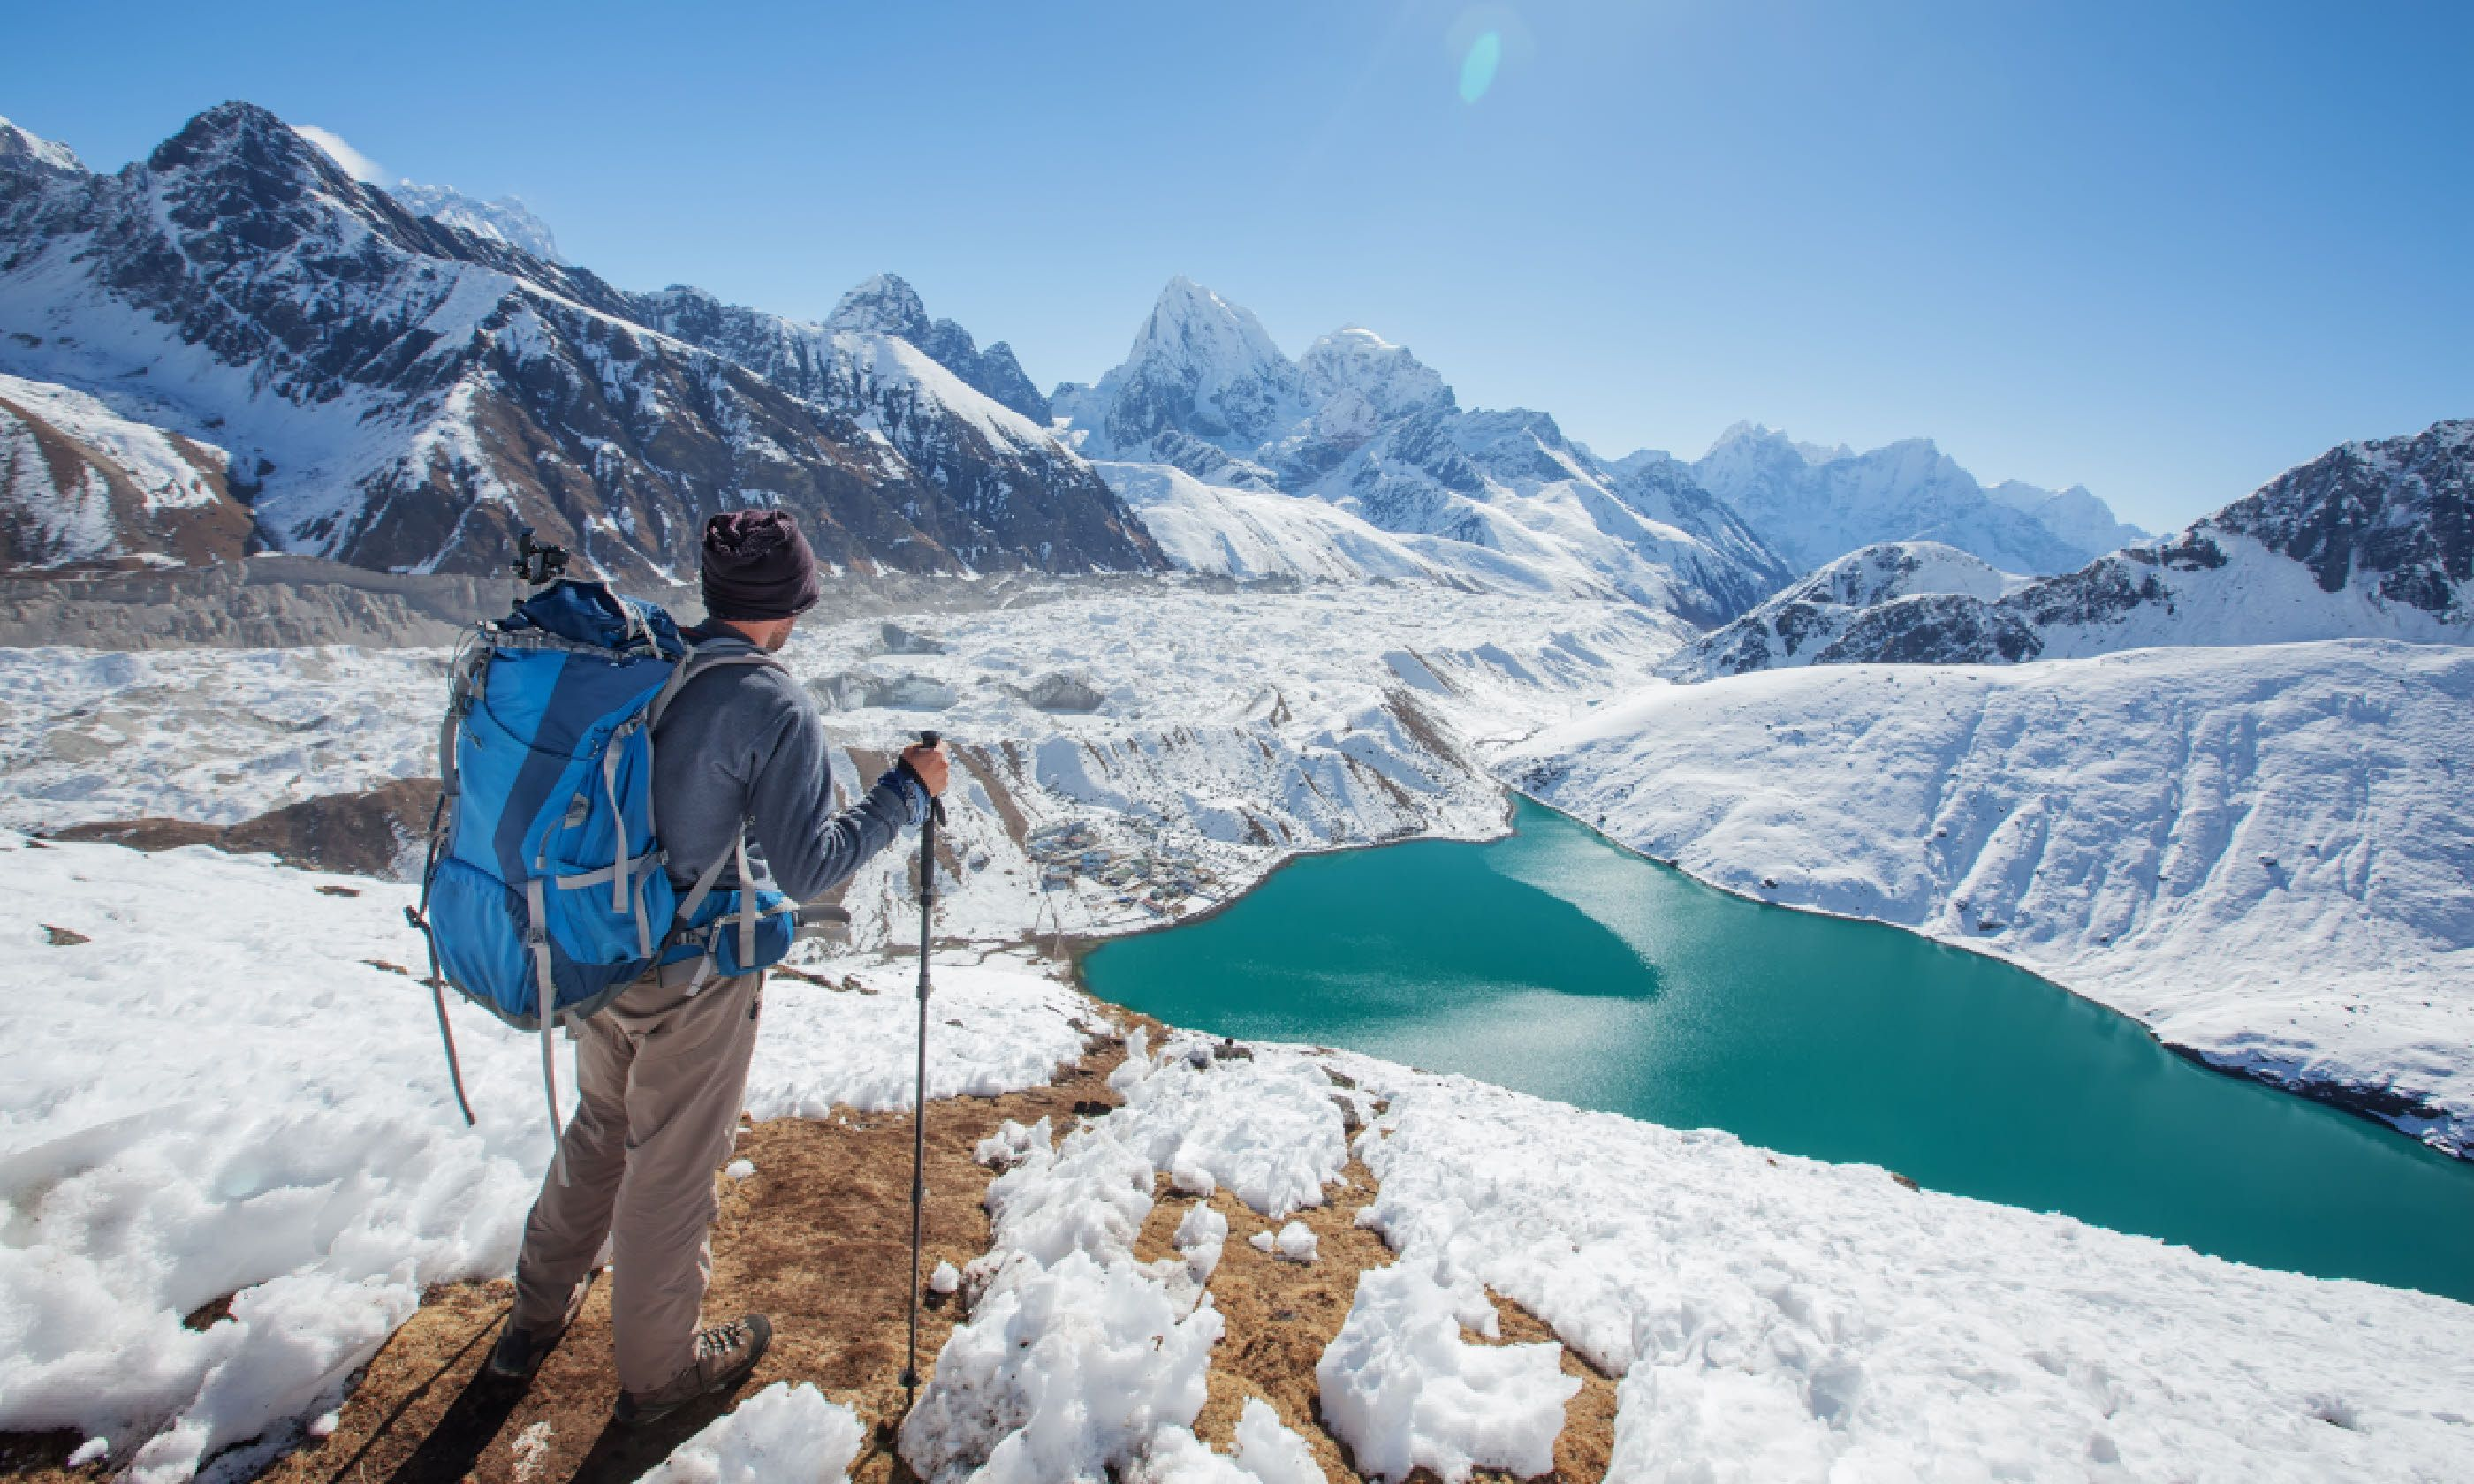 Hiker in the Himalayas (Shutterstock)